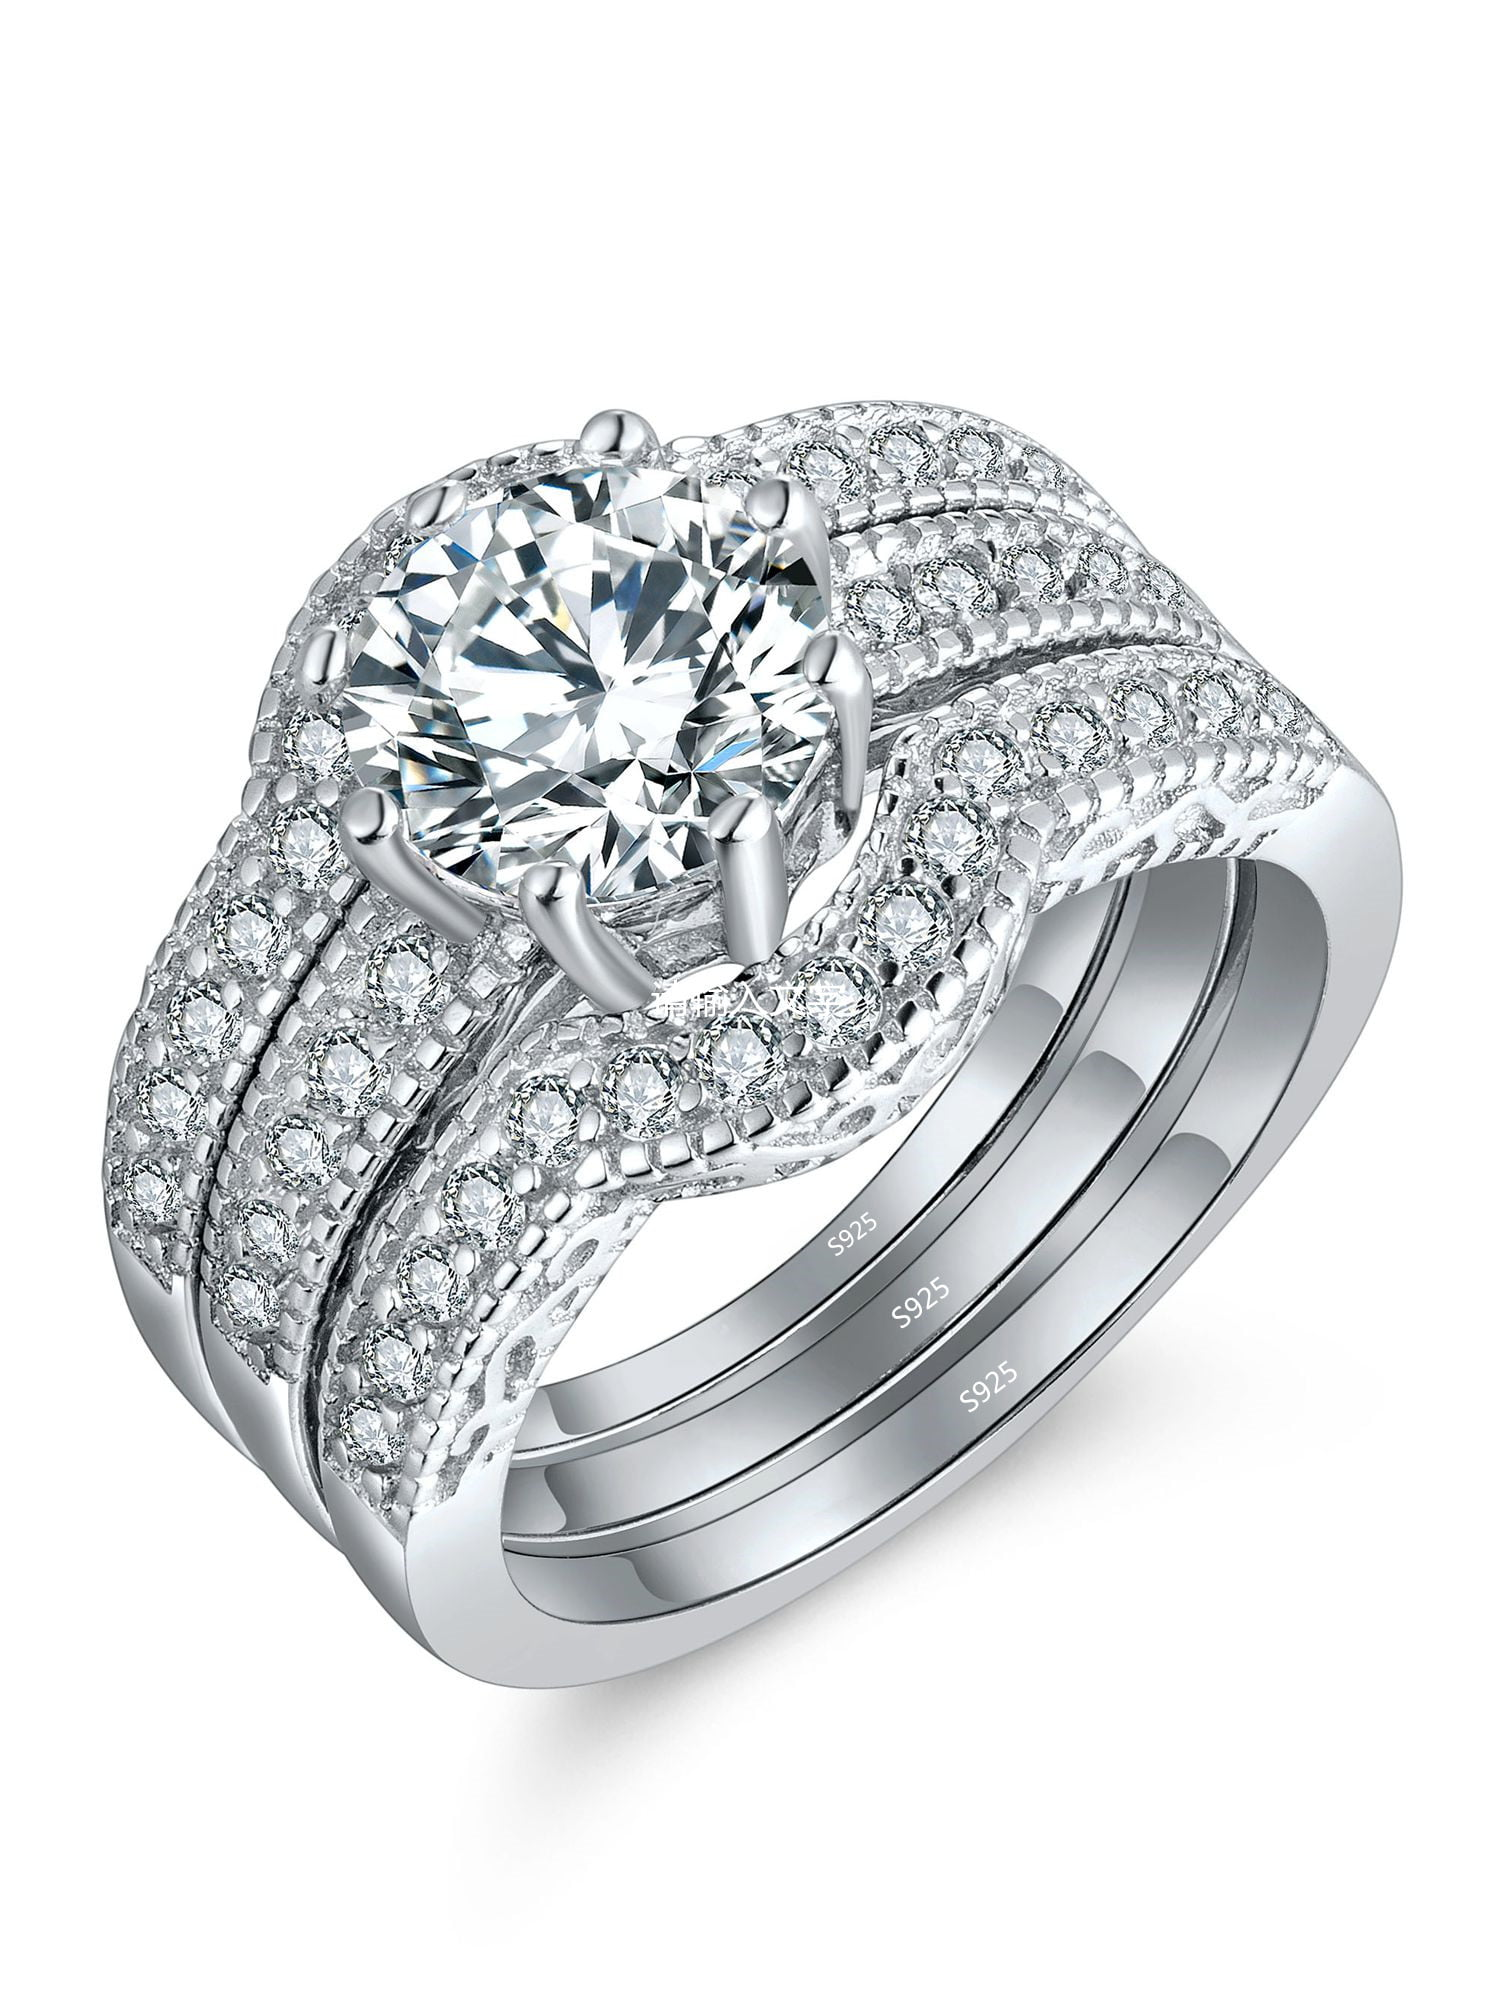 Couple Special Wedding Gift His And Her 2.50 Ct Diamond Anniversary Ring Bands